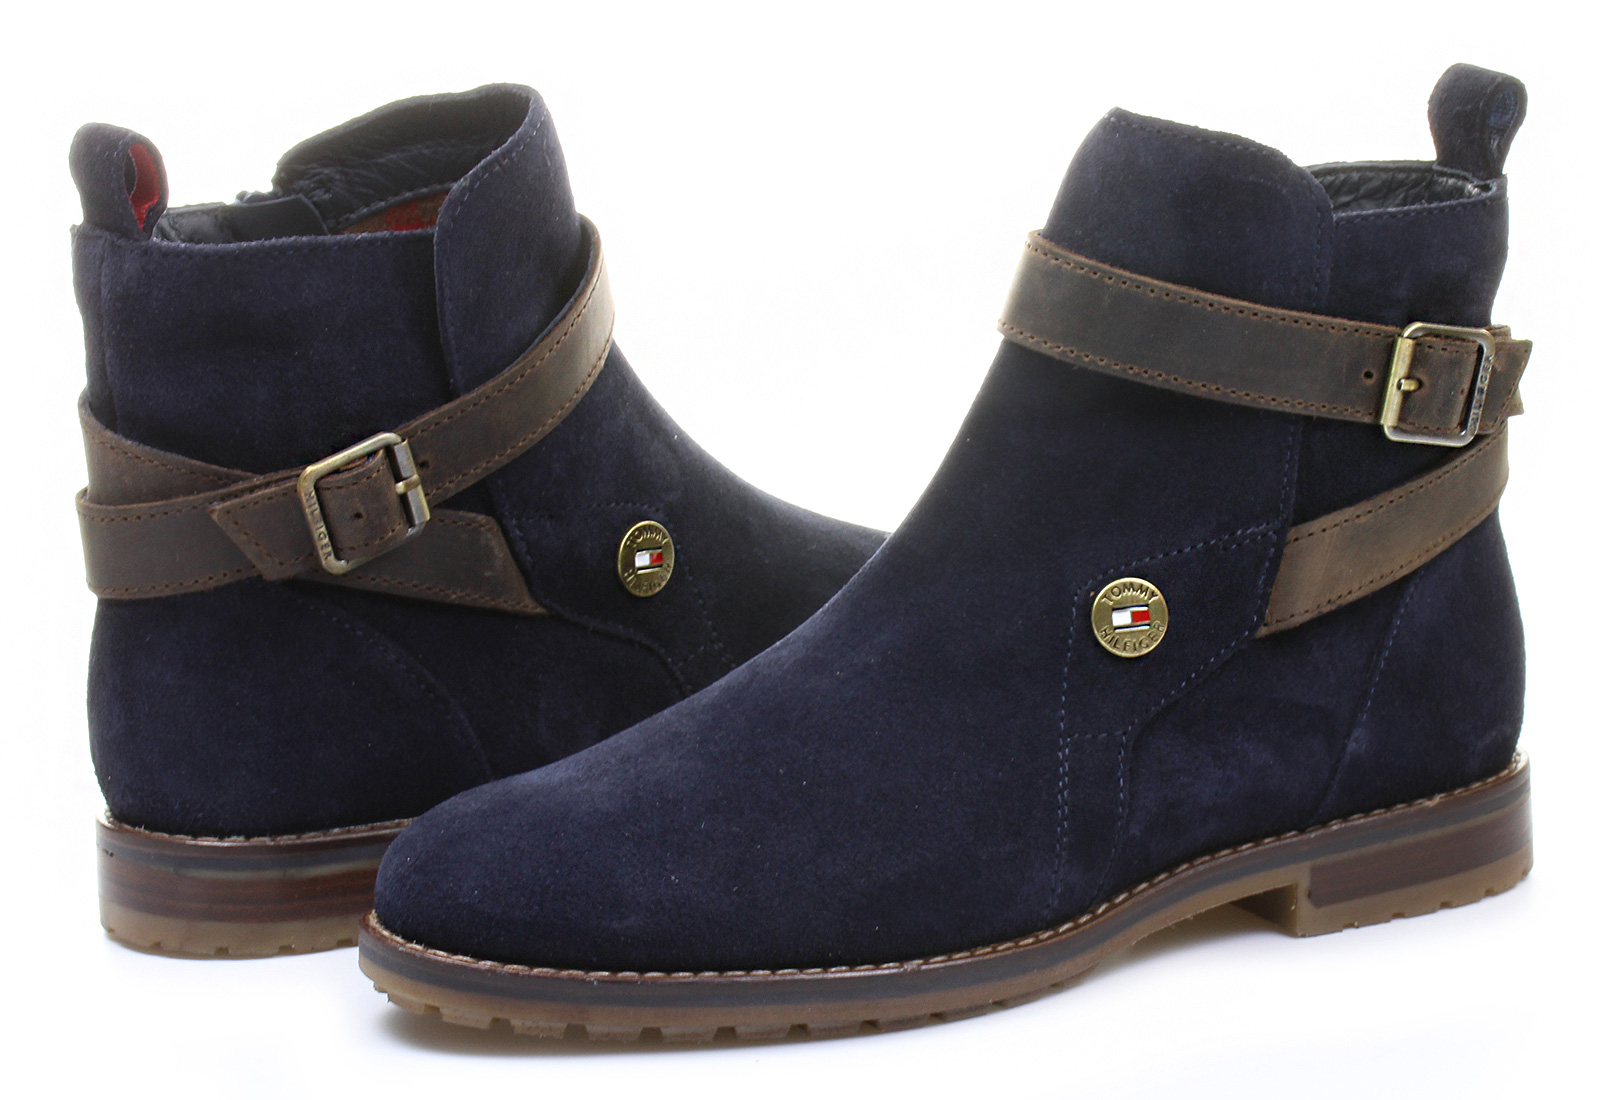 tommy hilfiger boots winona 1 b 13f 6098 403 online shop for sneakers shoes and boots. Black Bedroom Furniture Sets. Home Design Ideas